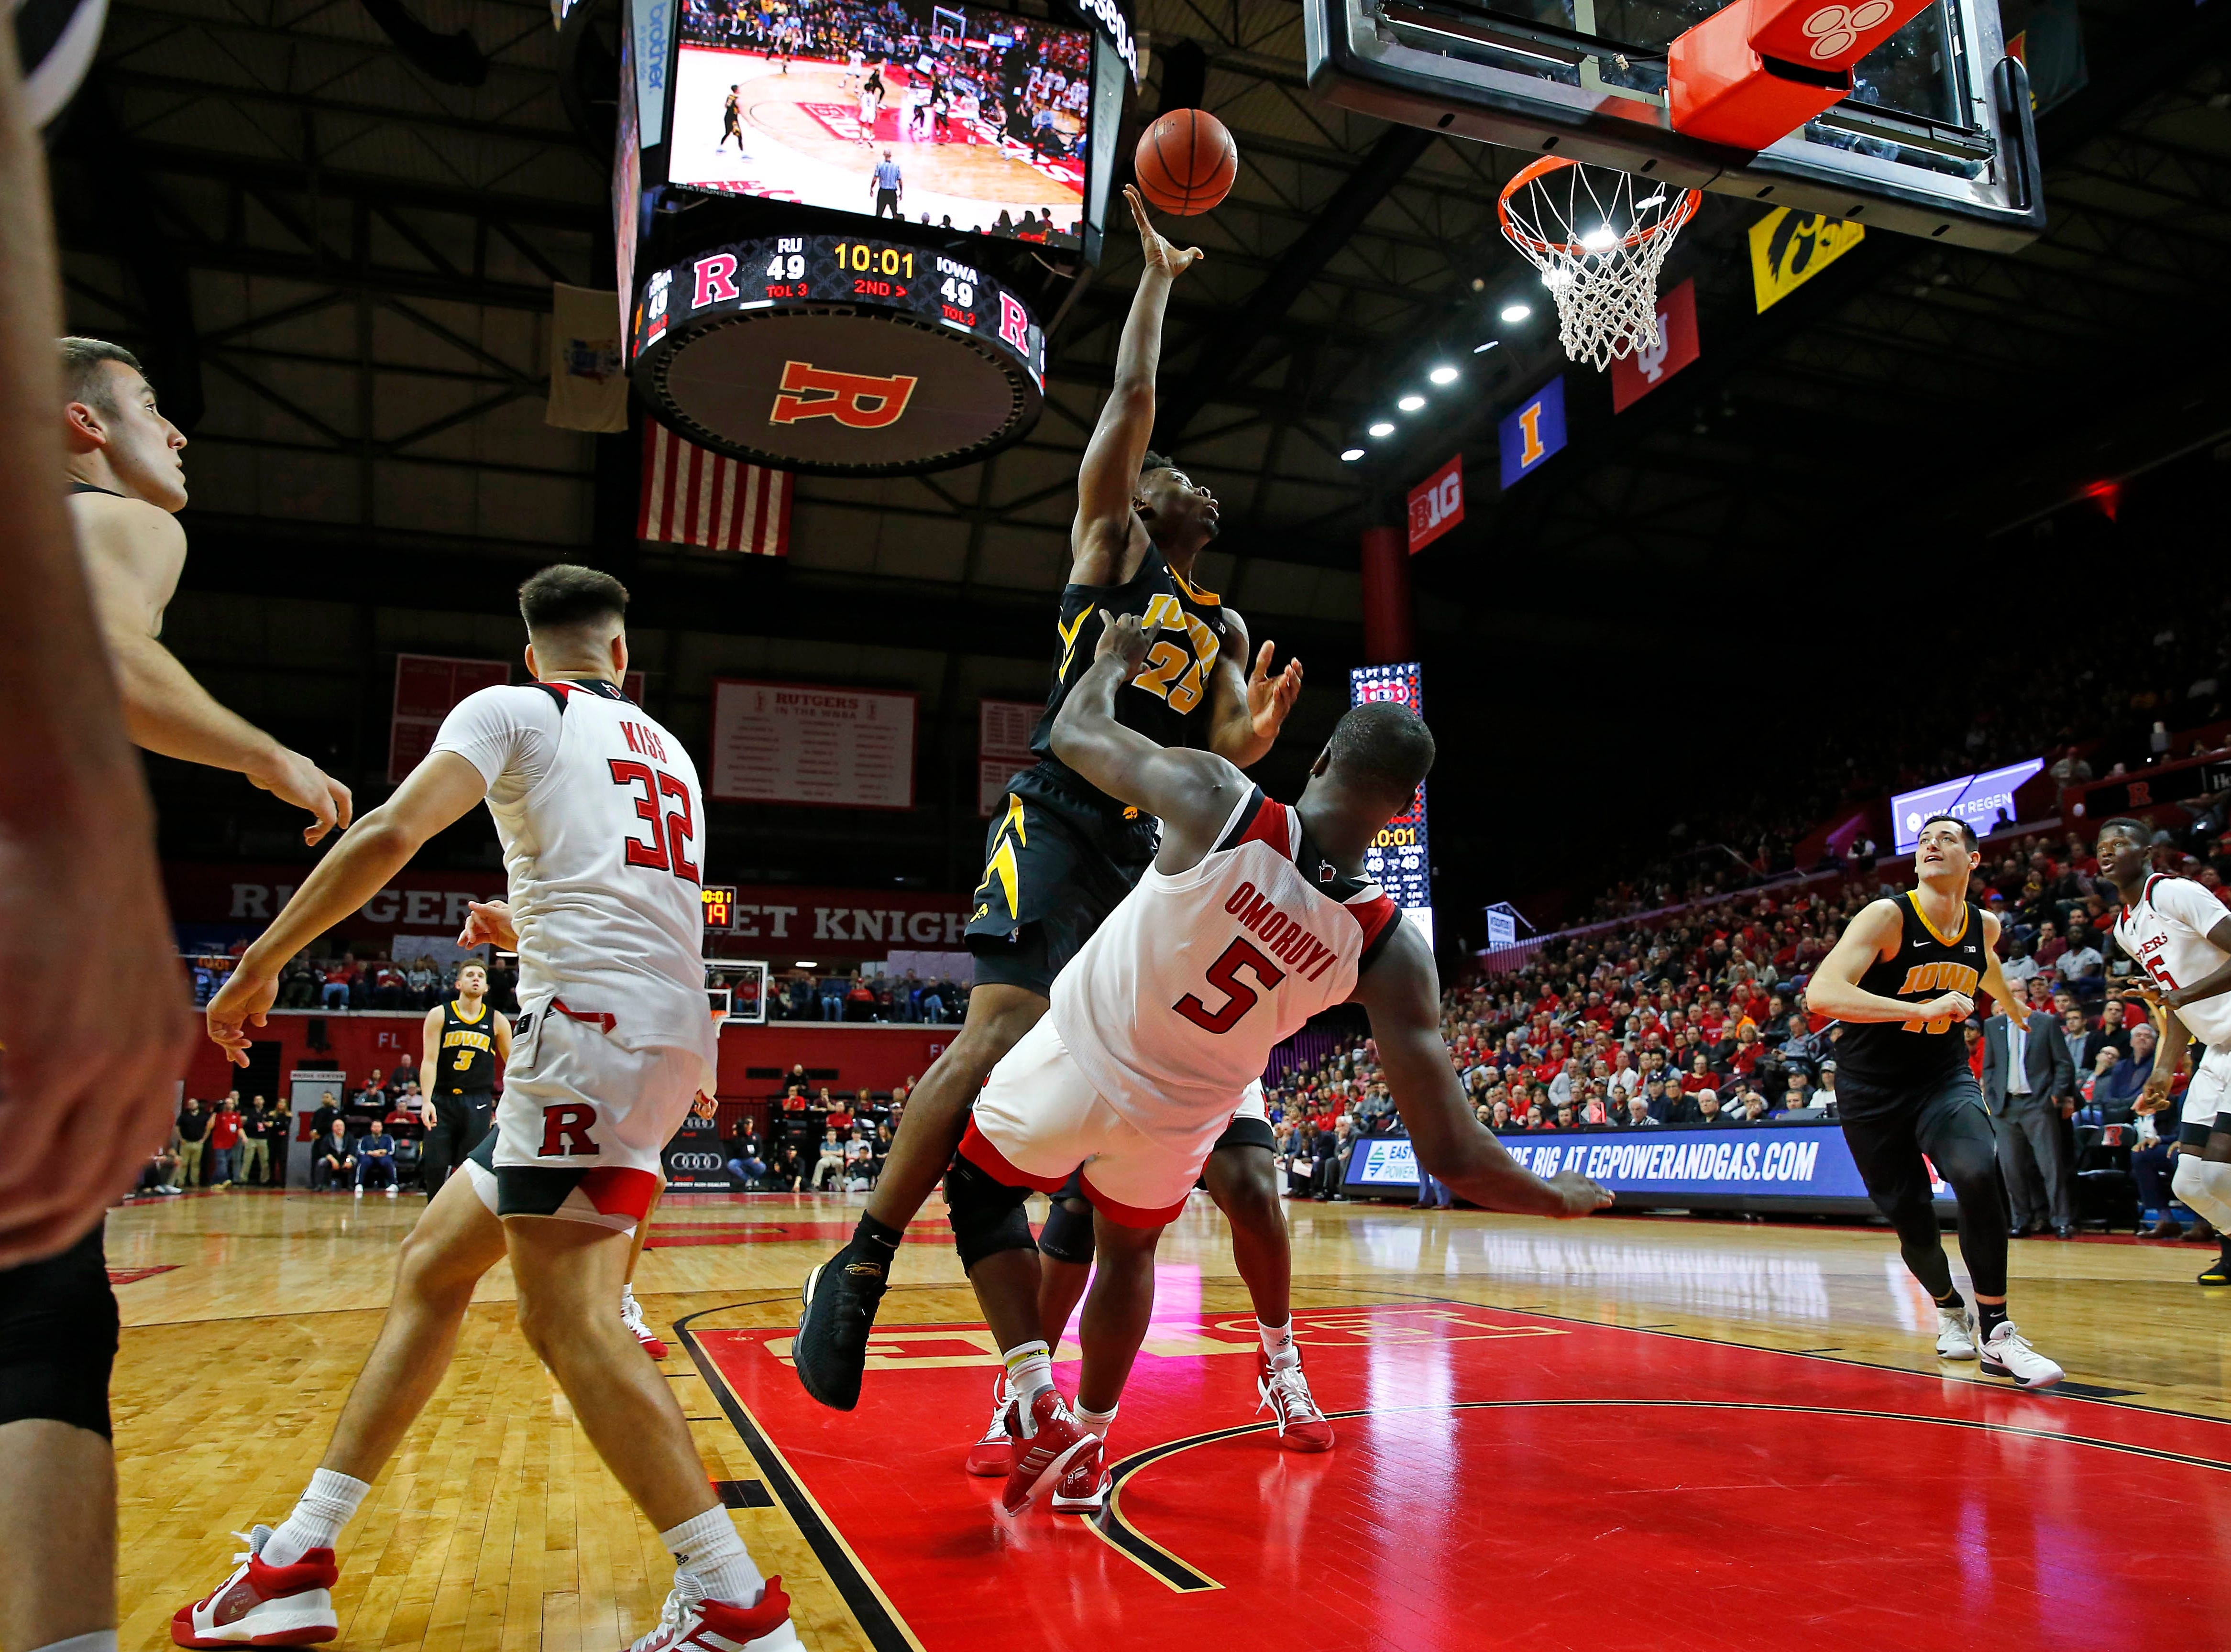 Iowa Hawkeyes forward Tyler Cook (25) gets to the basket against Rutgers Scarlet Knights forward Eugene Omoruyi (5) during the second half at Rutgers Athletic Center (RAC). Mandatory Credit: Noah K. Murray-USA TODAY Sports